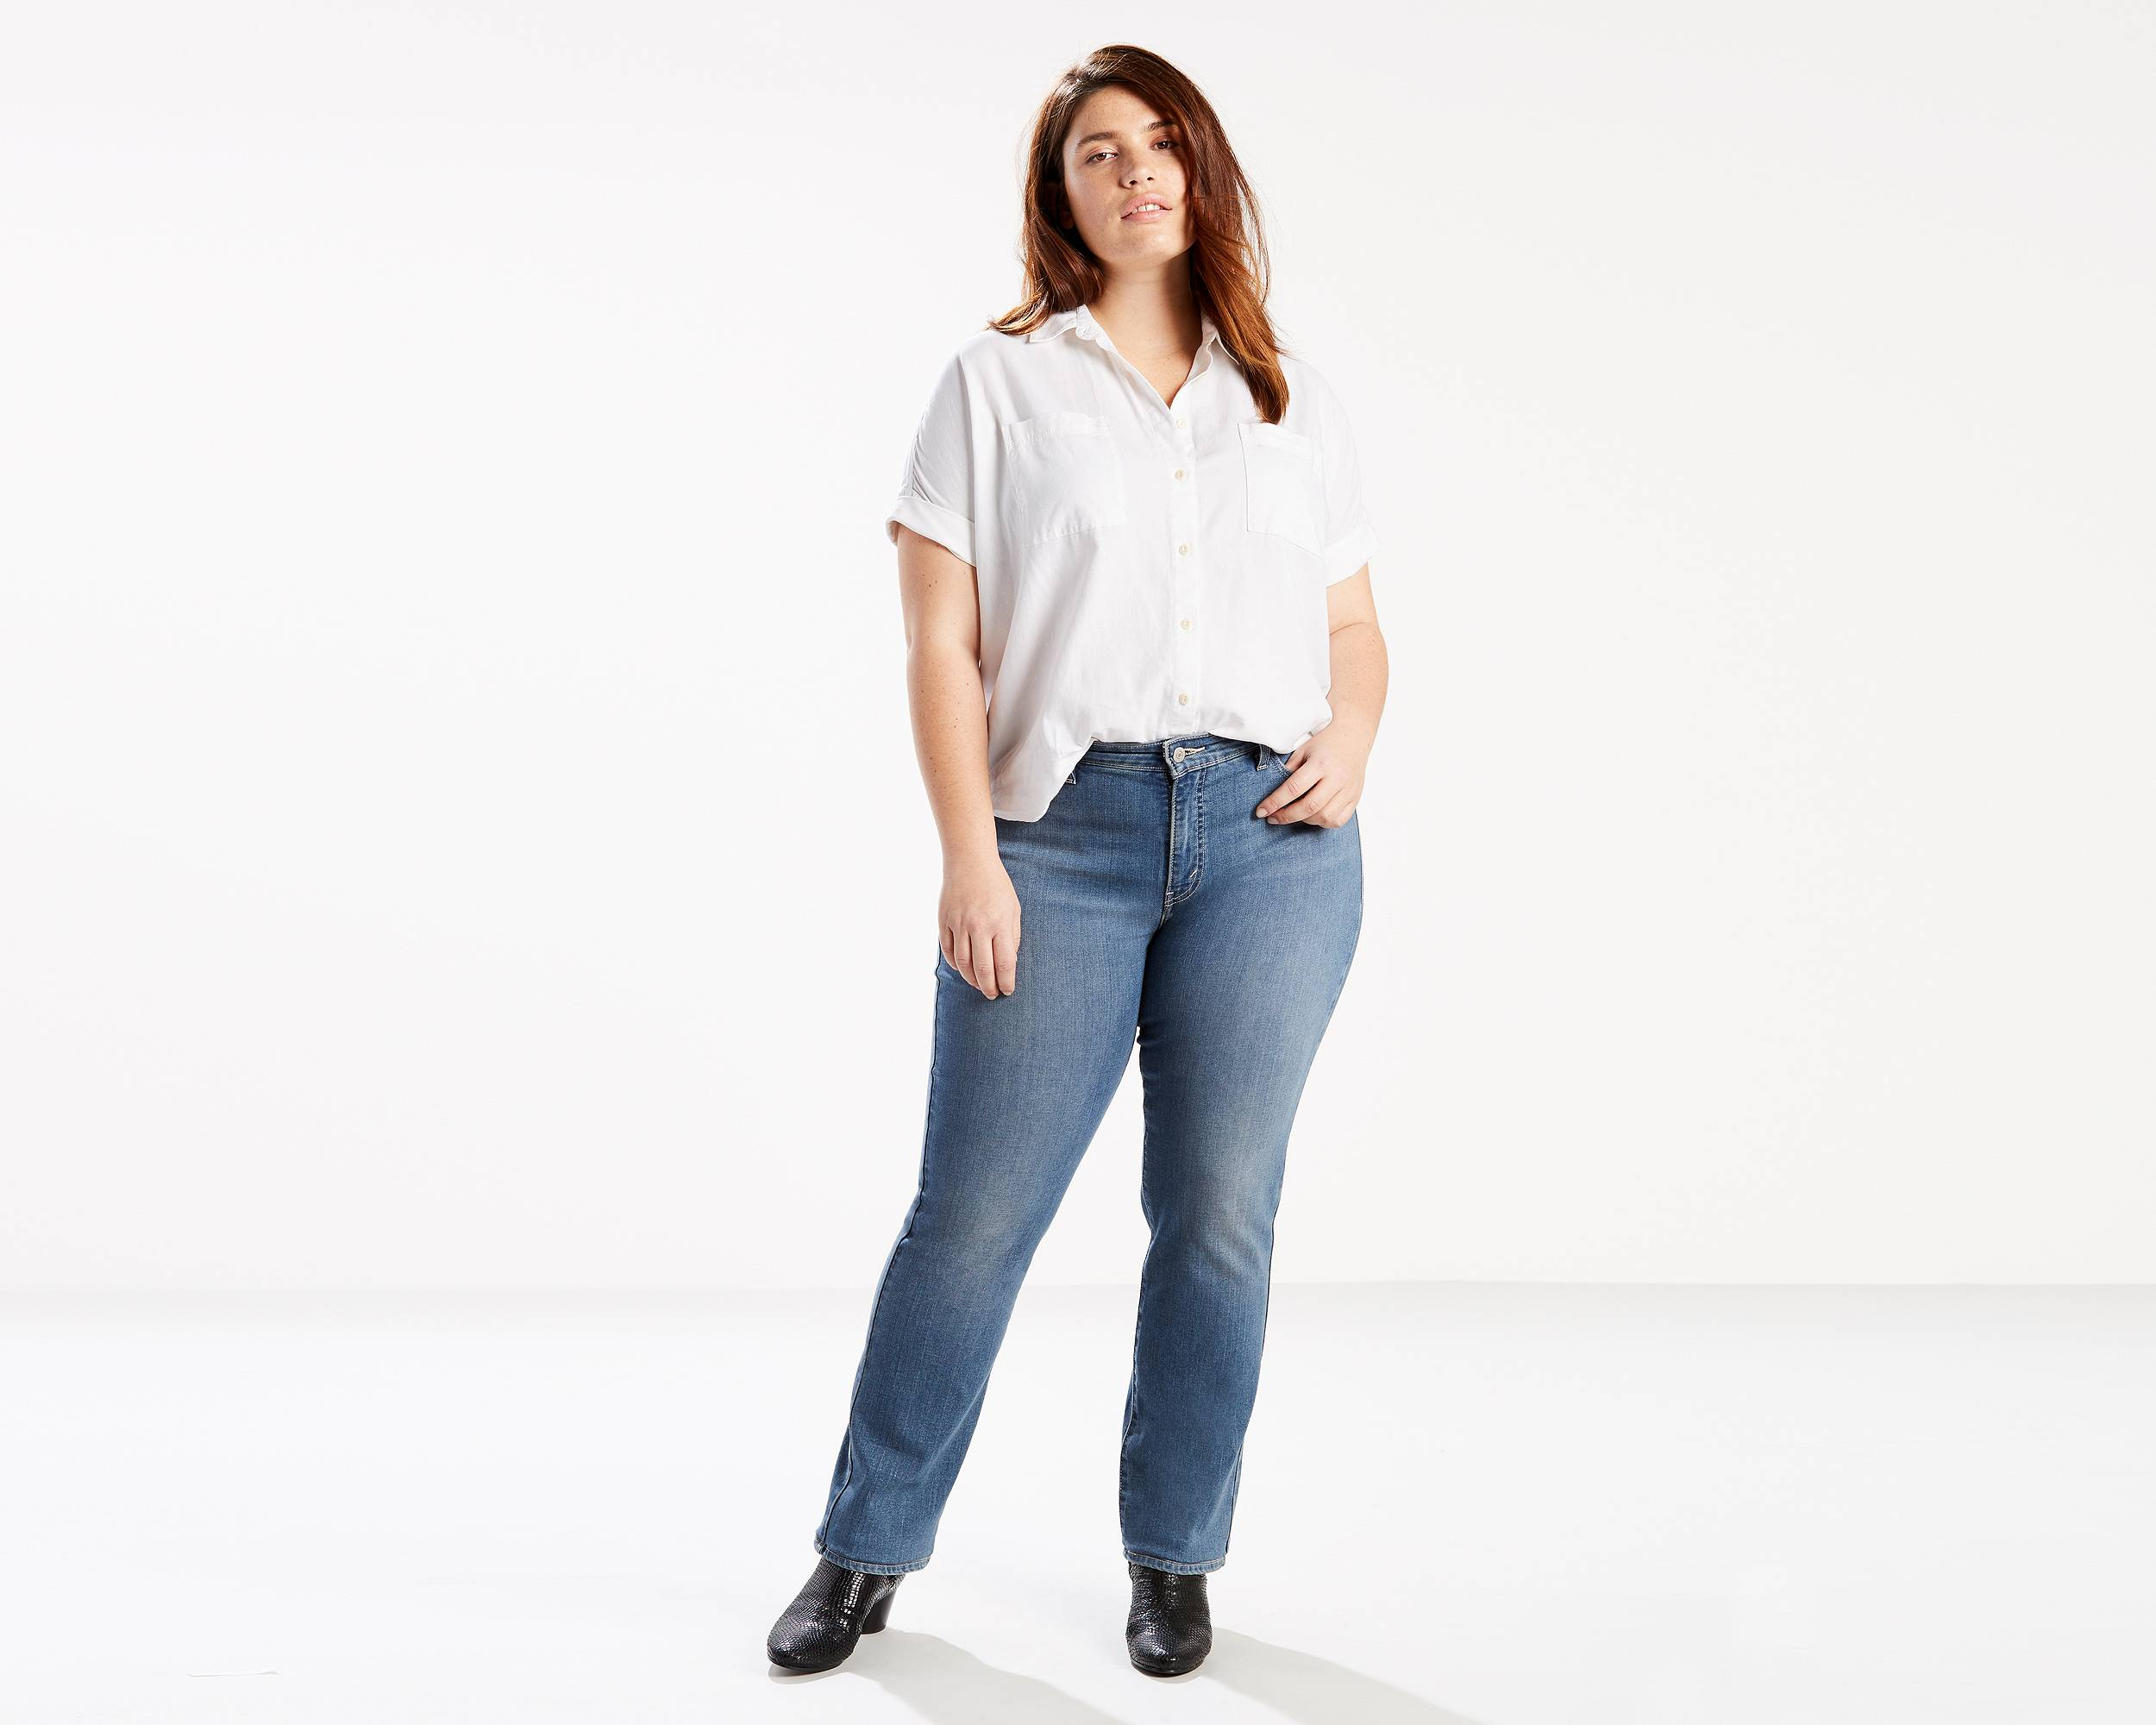 Best Fitting Jeans For Plus Size